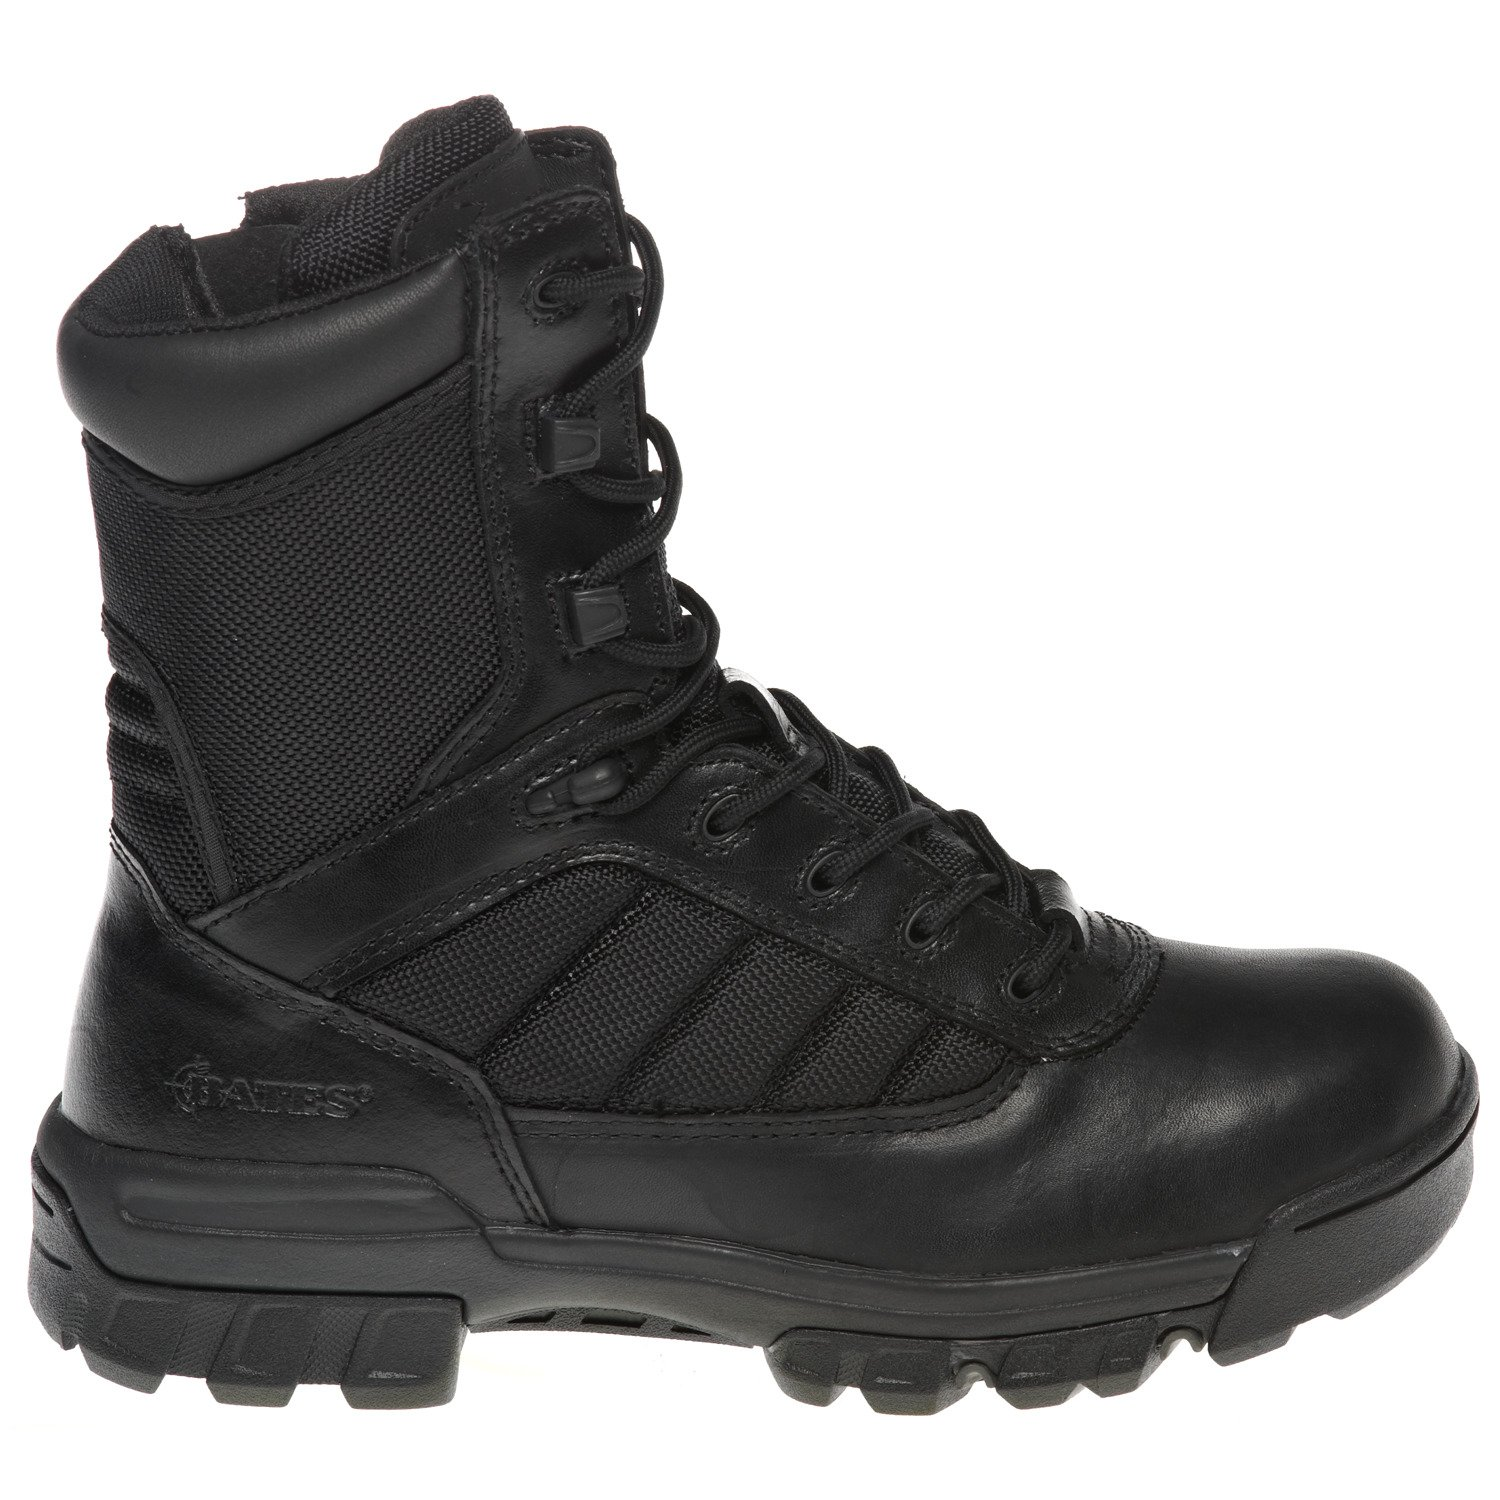 31ef7c8bc93 Display product reviews for Bates Women s Ultra-Lites Tactical Sport  Side-Zip Boots